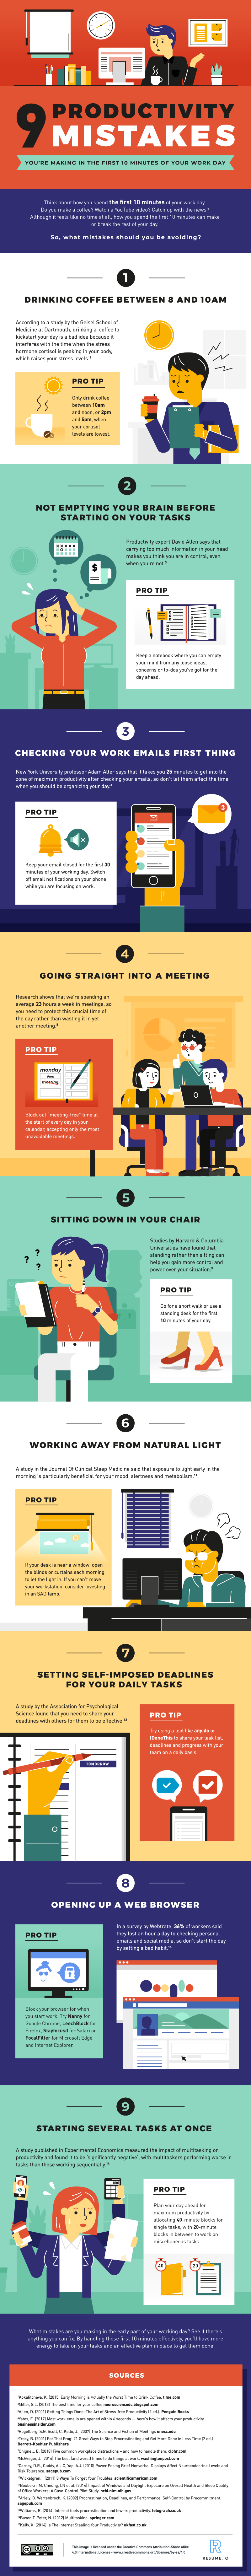 9 Productivity Mistakes You're Making in the First 10 Minutes of Your Work Day #infographic